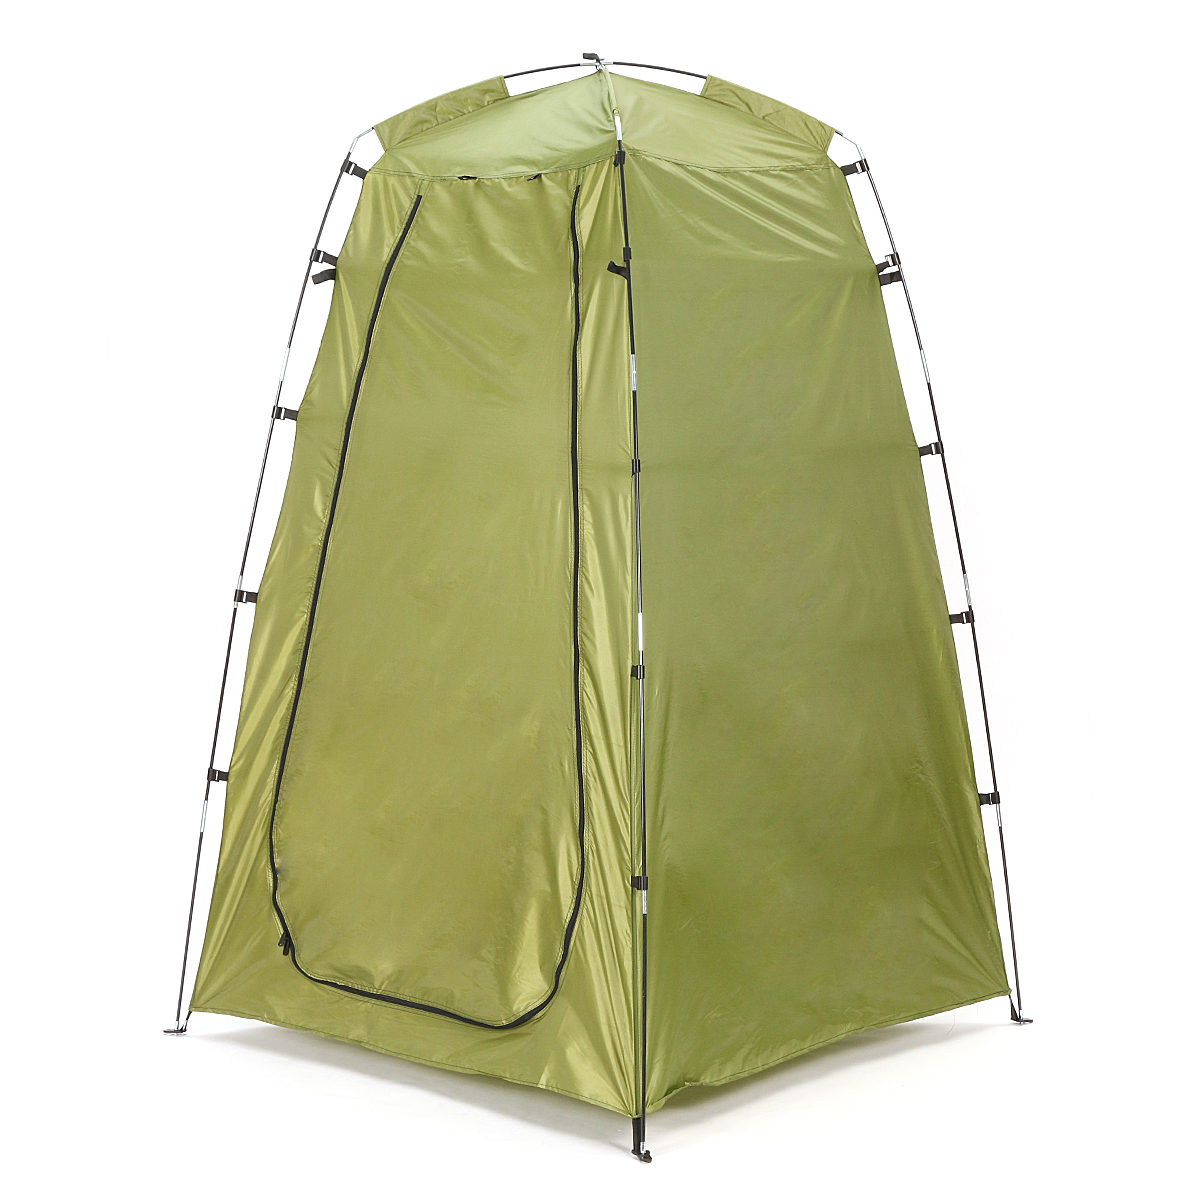 Outdoor Portable Popup Tent Camping Shower Bathroom Privacy Toilet - Camping bathroom tent